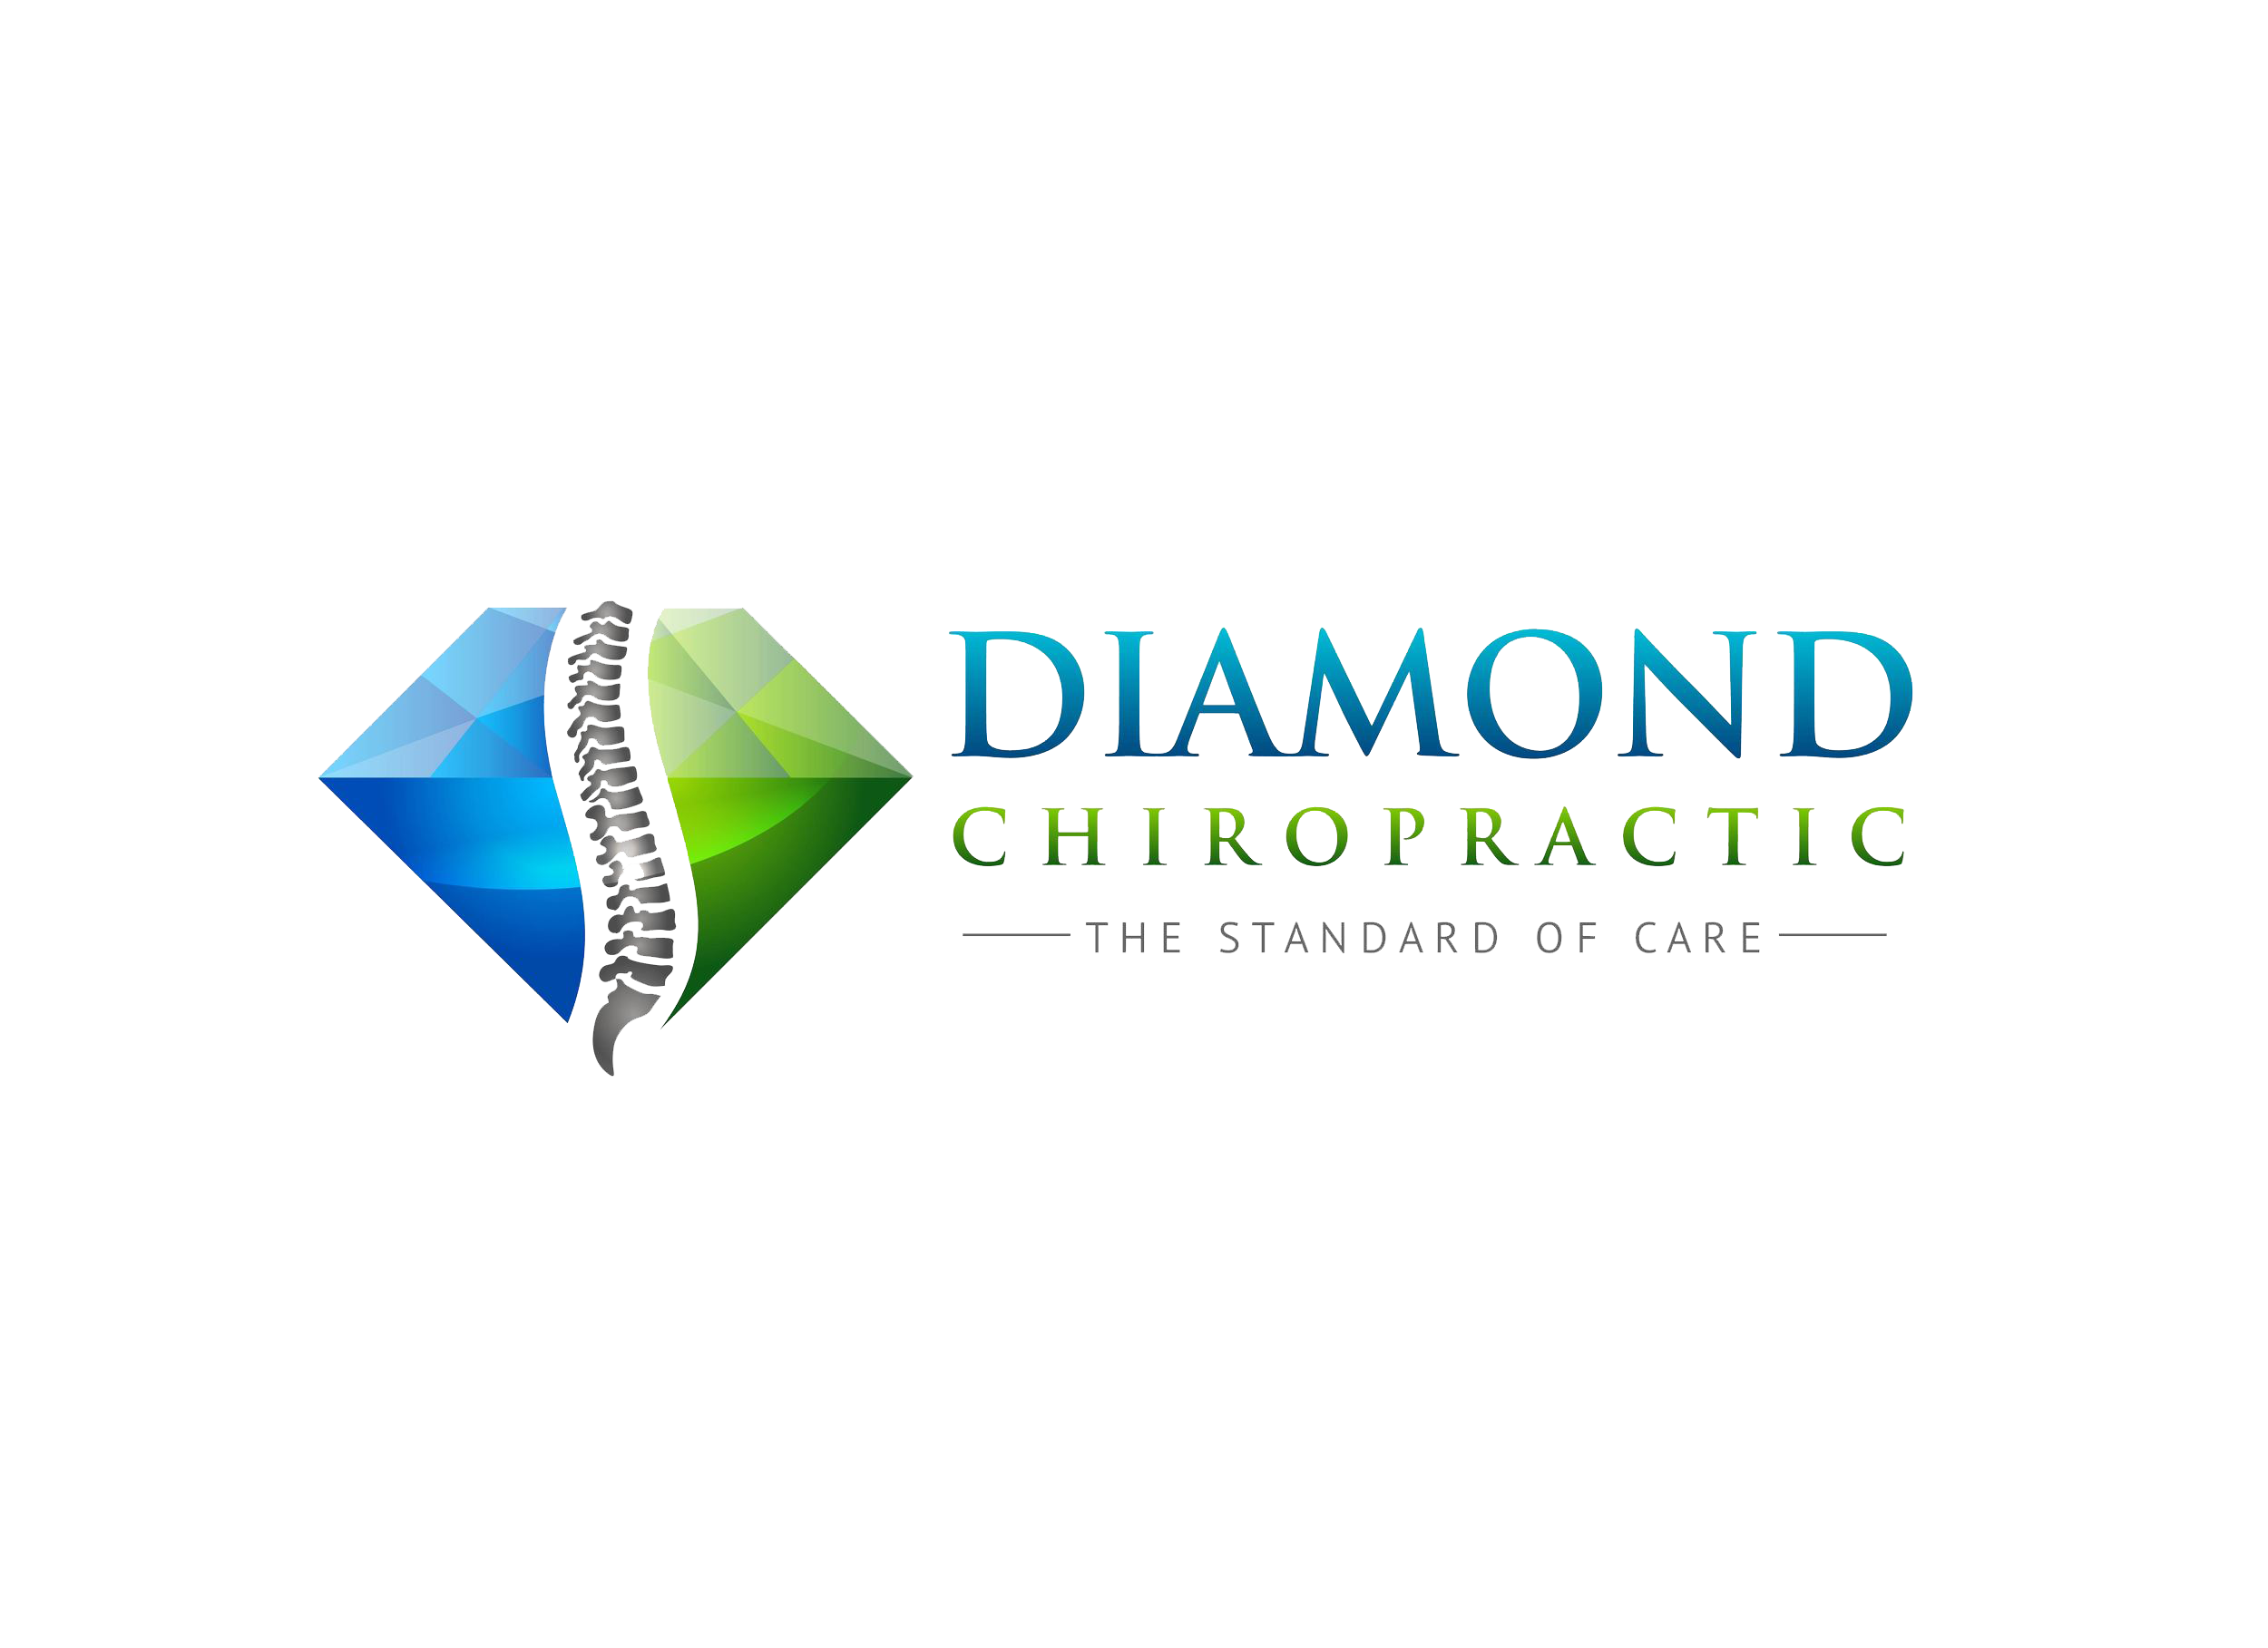 Diamond Chiropractic